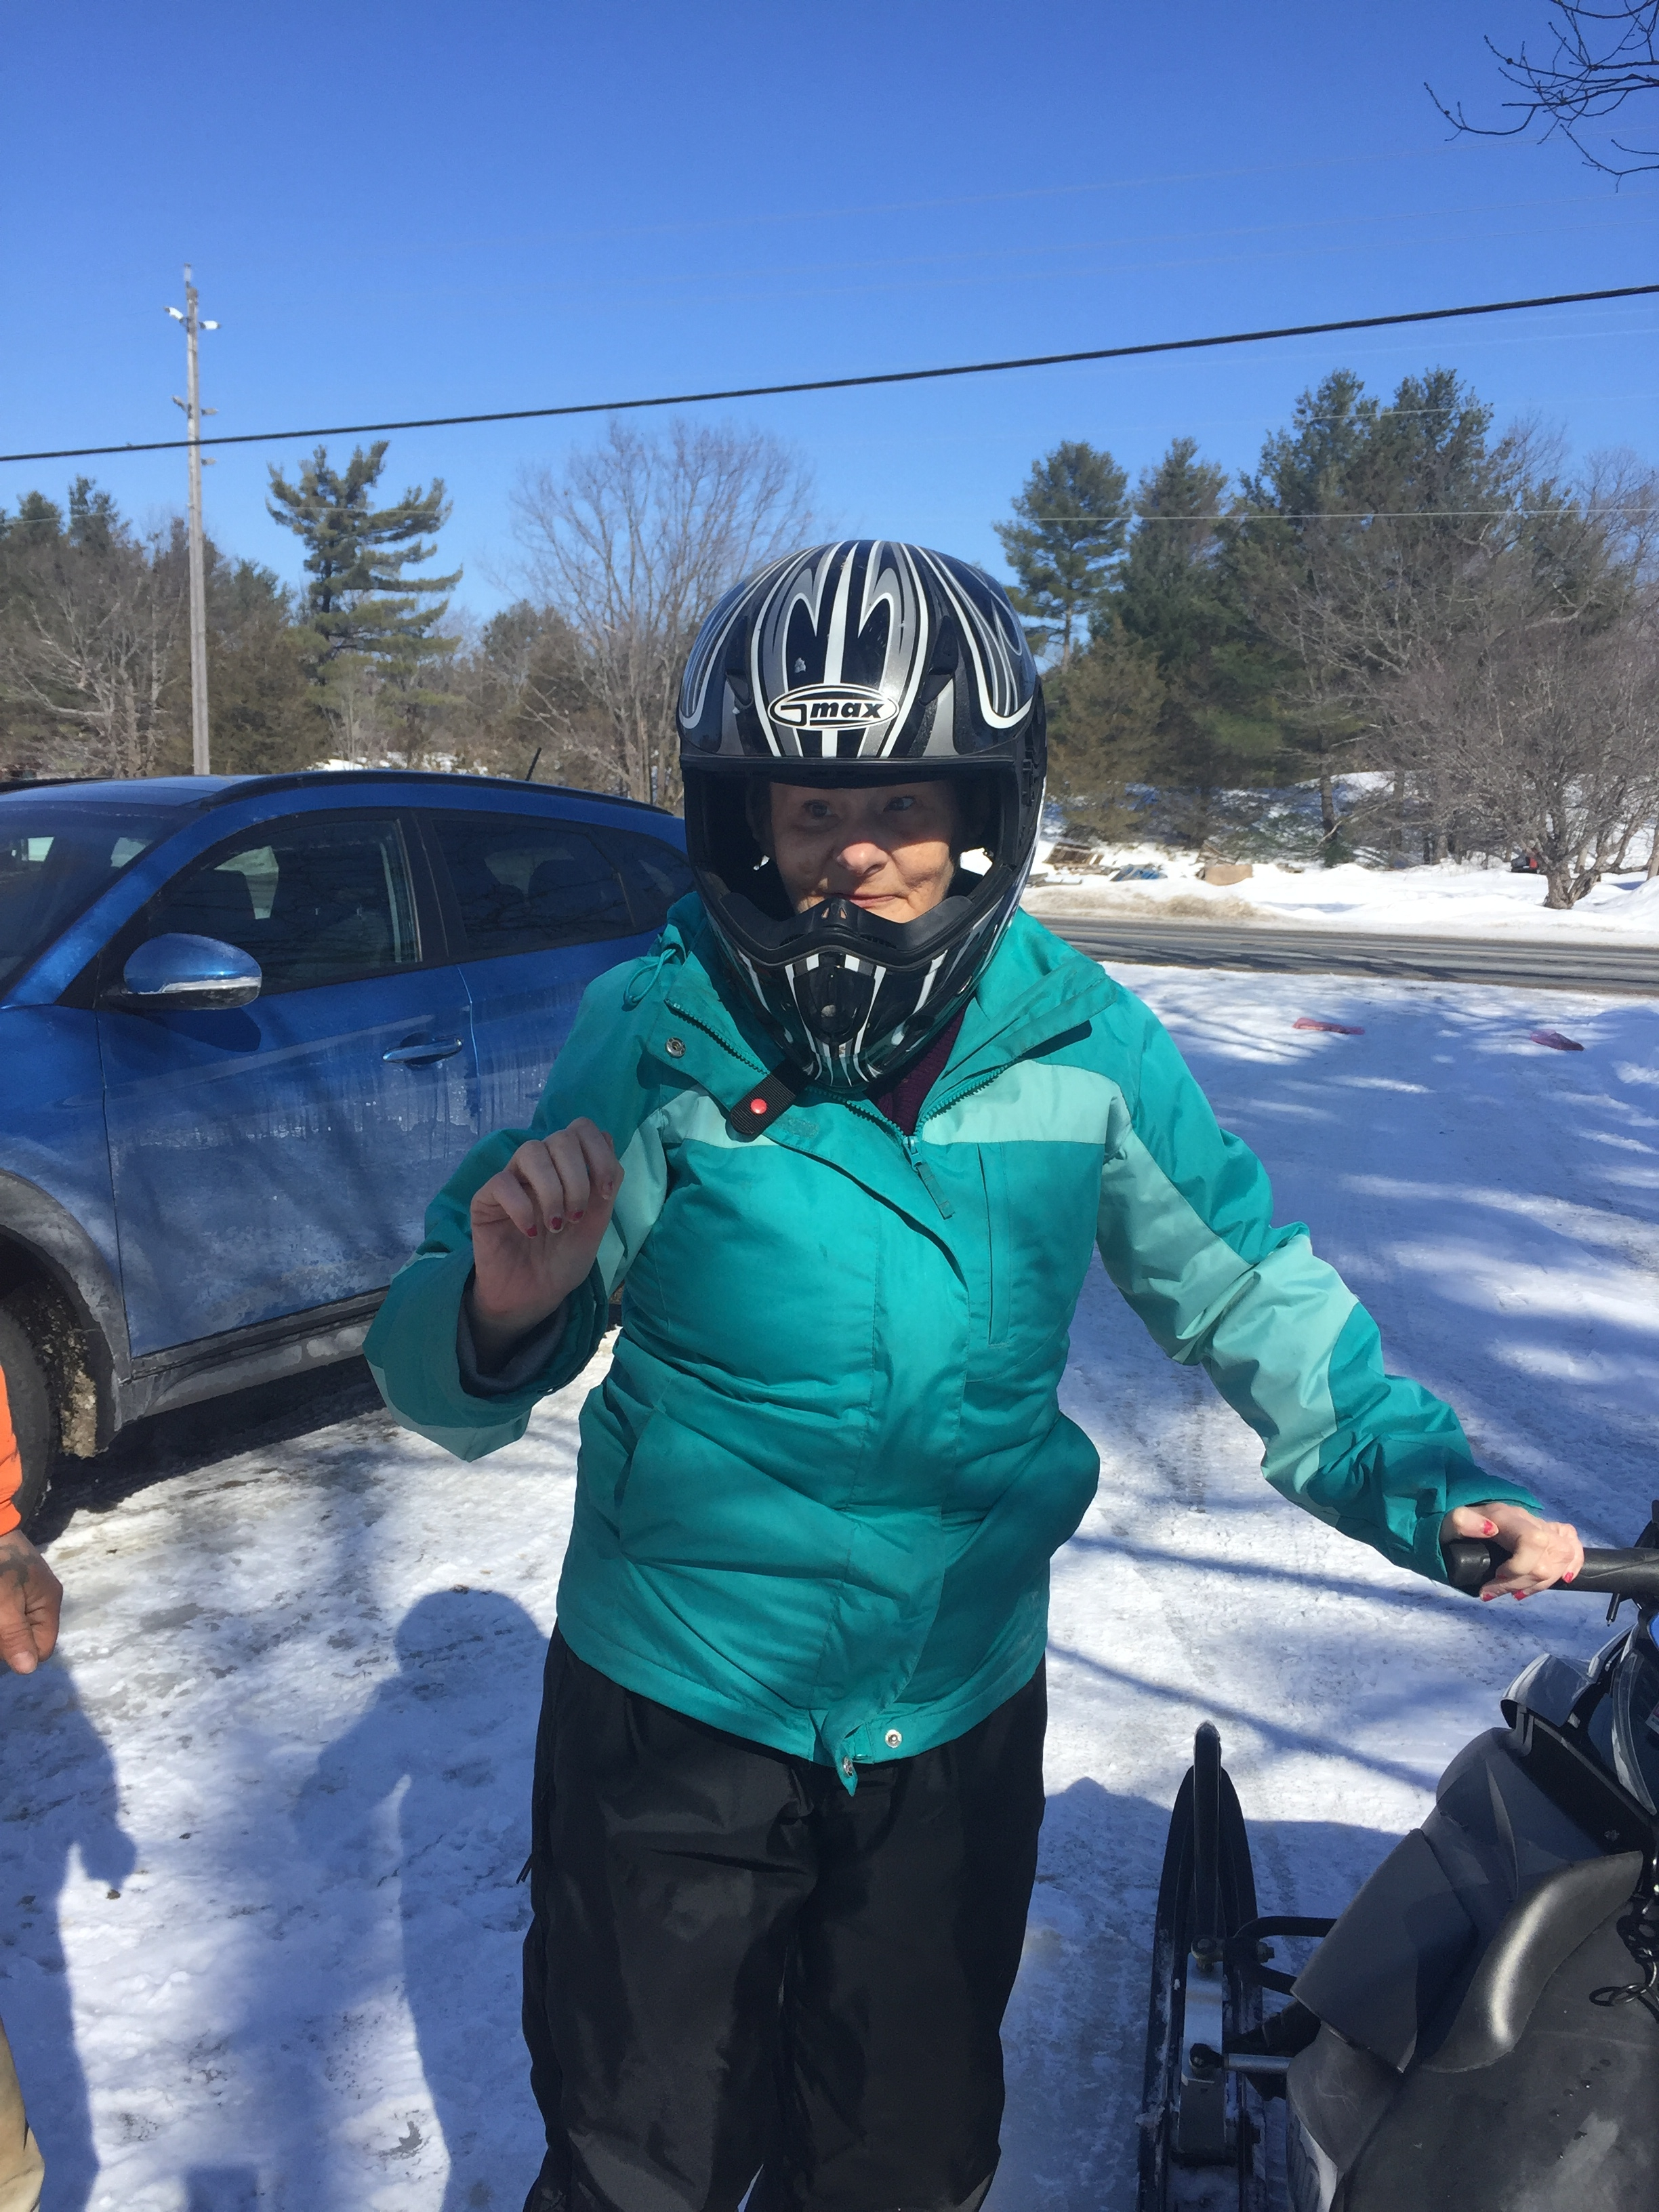 Yvonne Skidooing March 2019